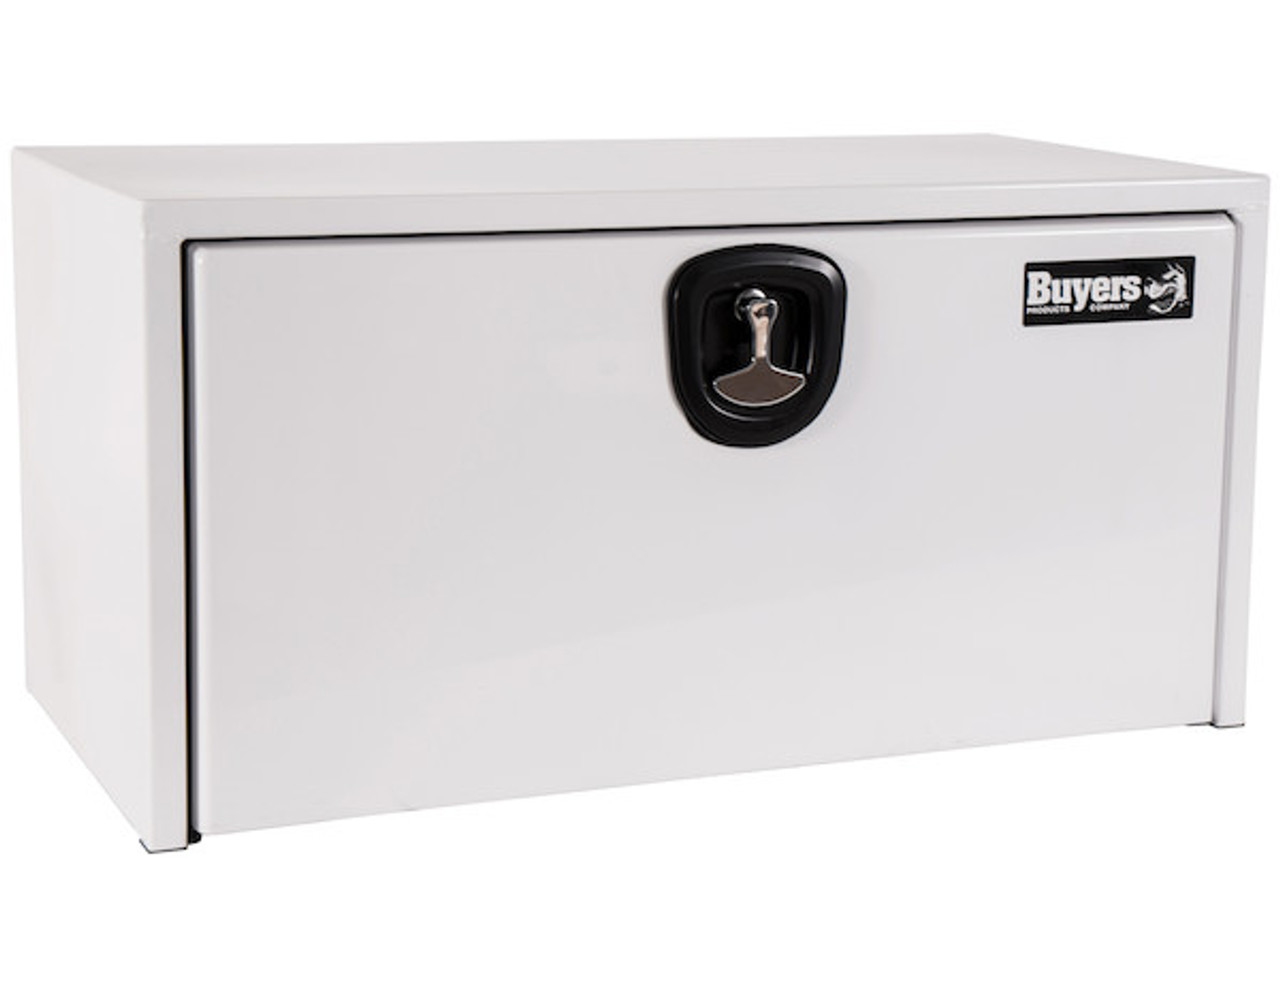 "1732405 BUYERS PRODUCTS WHITE STEEL UNDERBODY TRUCK TOOLBOX WITH 3-POINT LATCH 18""Hx18""Dx36""W"